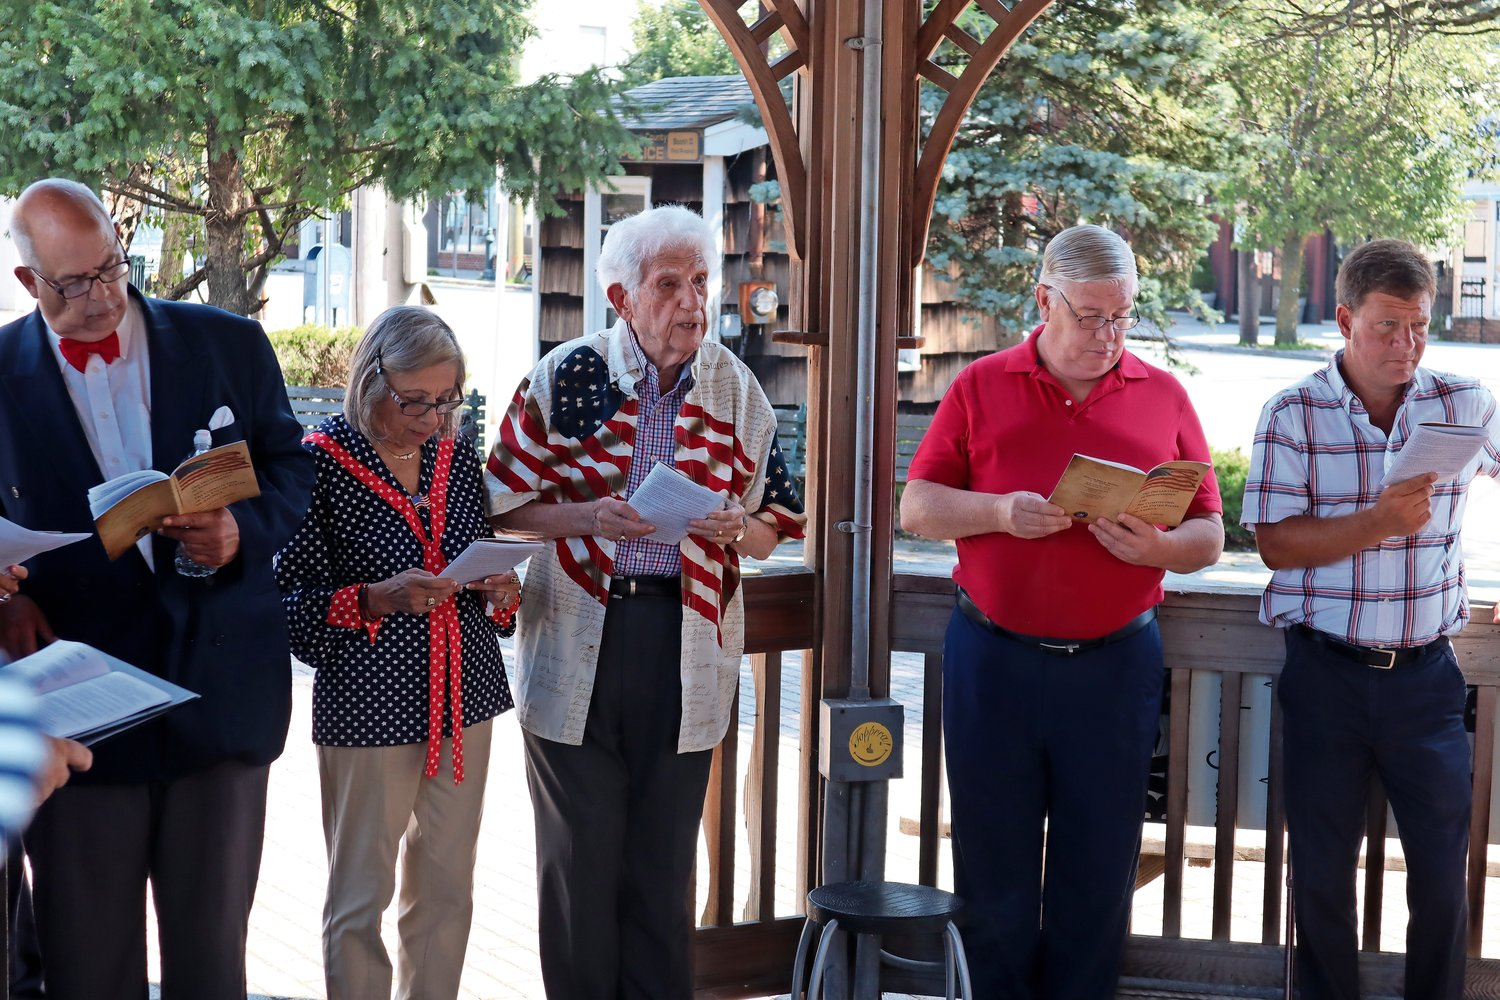 Adrienne and Lawrence Garfinkel, second and third from the left, host the annual Declaration of Independence reading in the gazebo. Joining them were Merrick Chorale leader Herbert Bradensten, Mike Reid and Dave Denenberg.